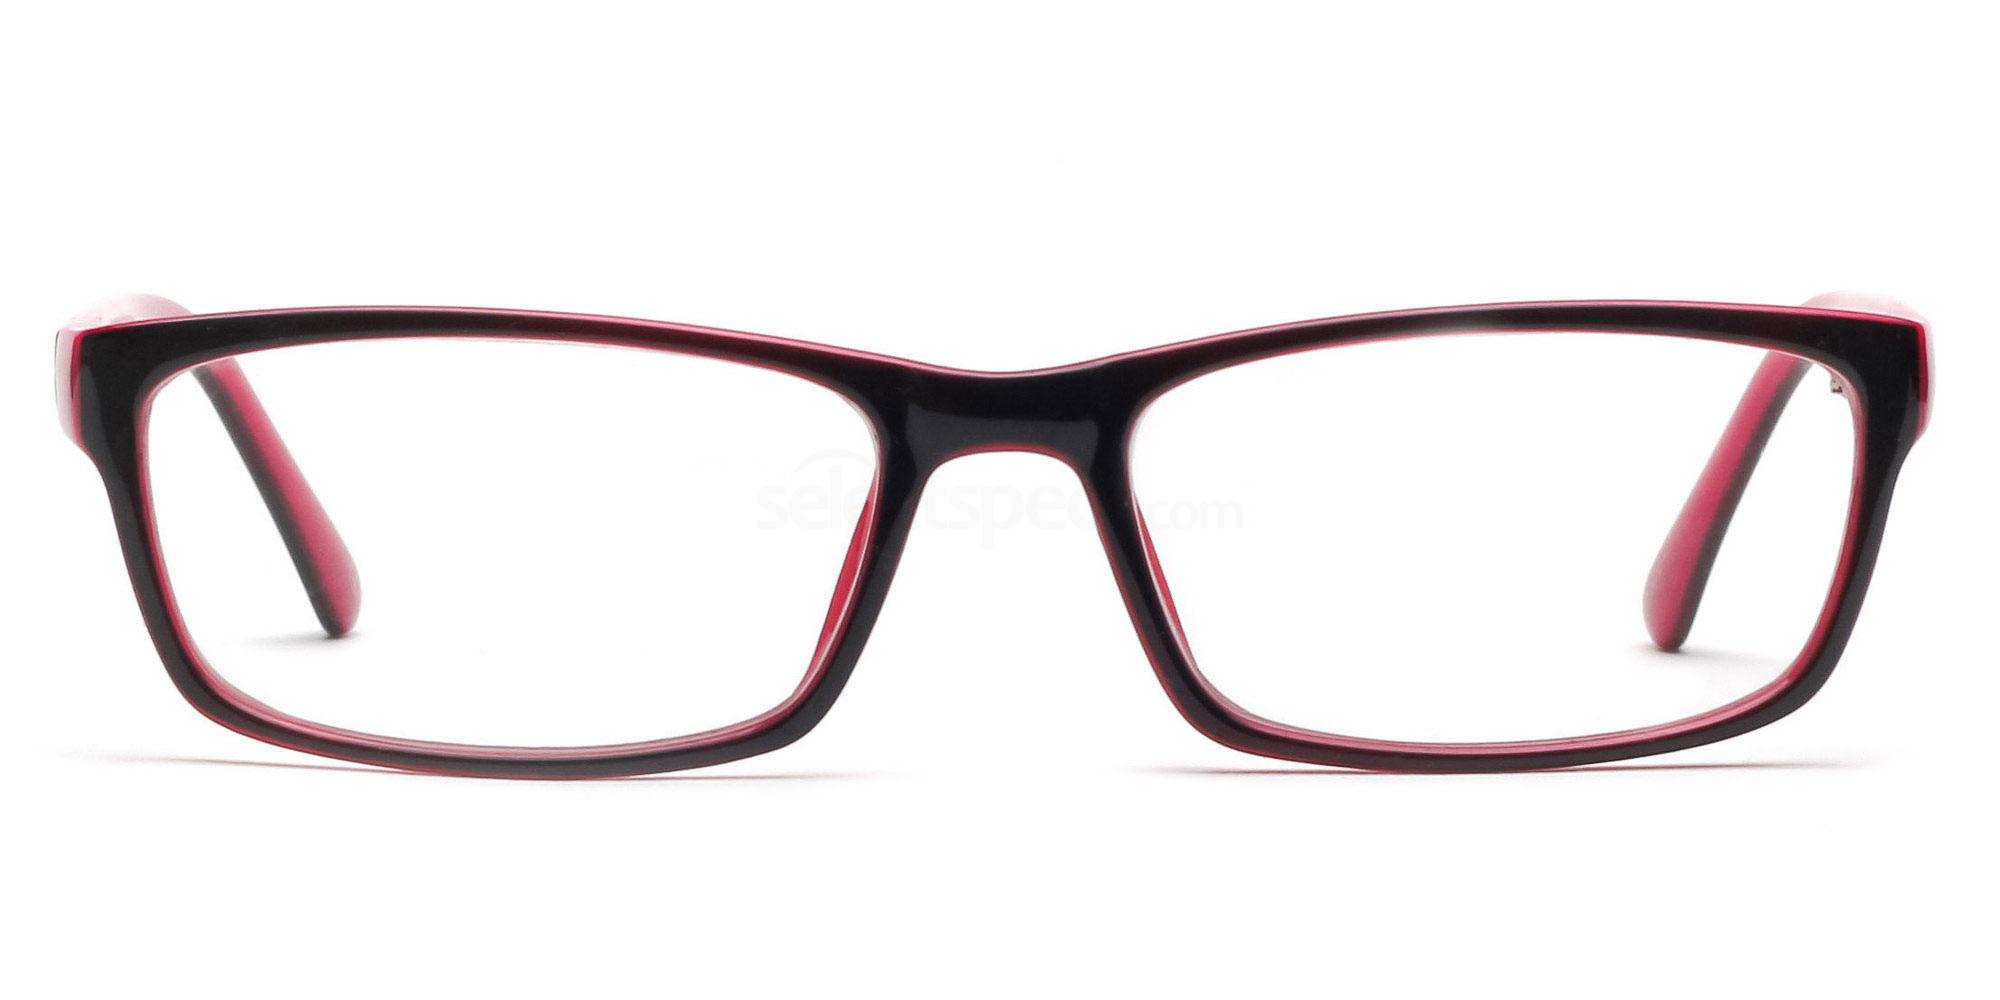 Pink and Black 2426 - Black and Pink Glasses, Savannah